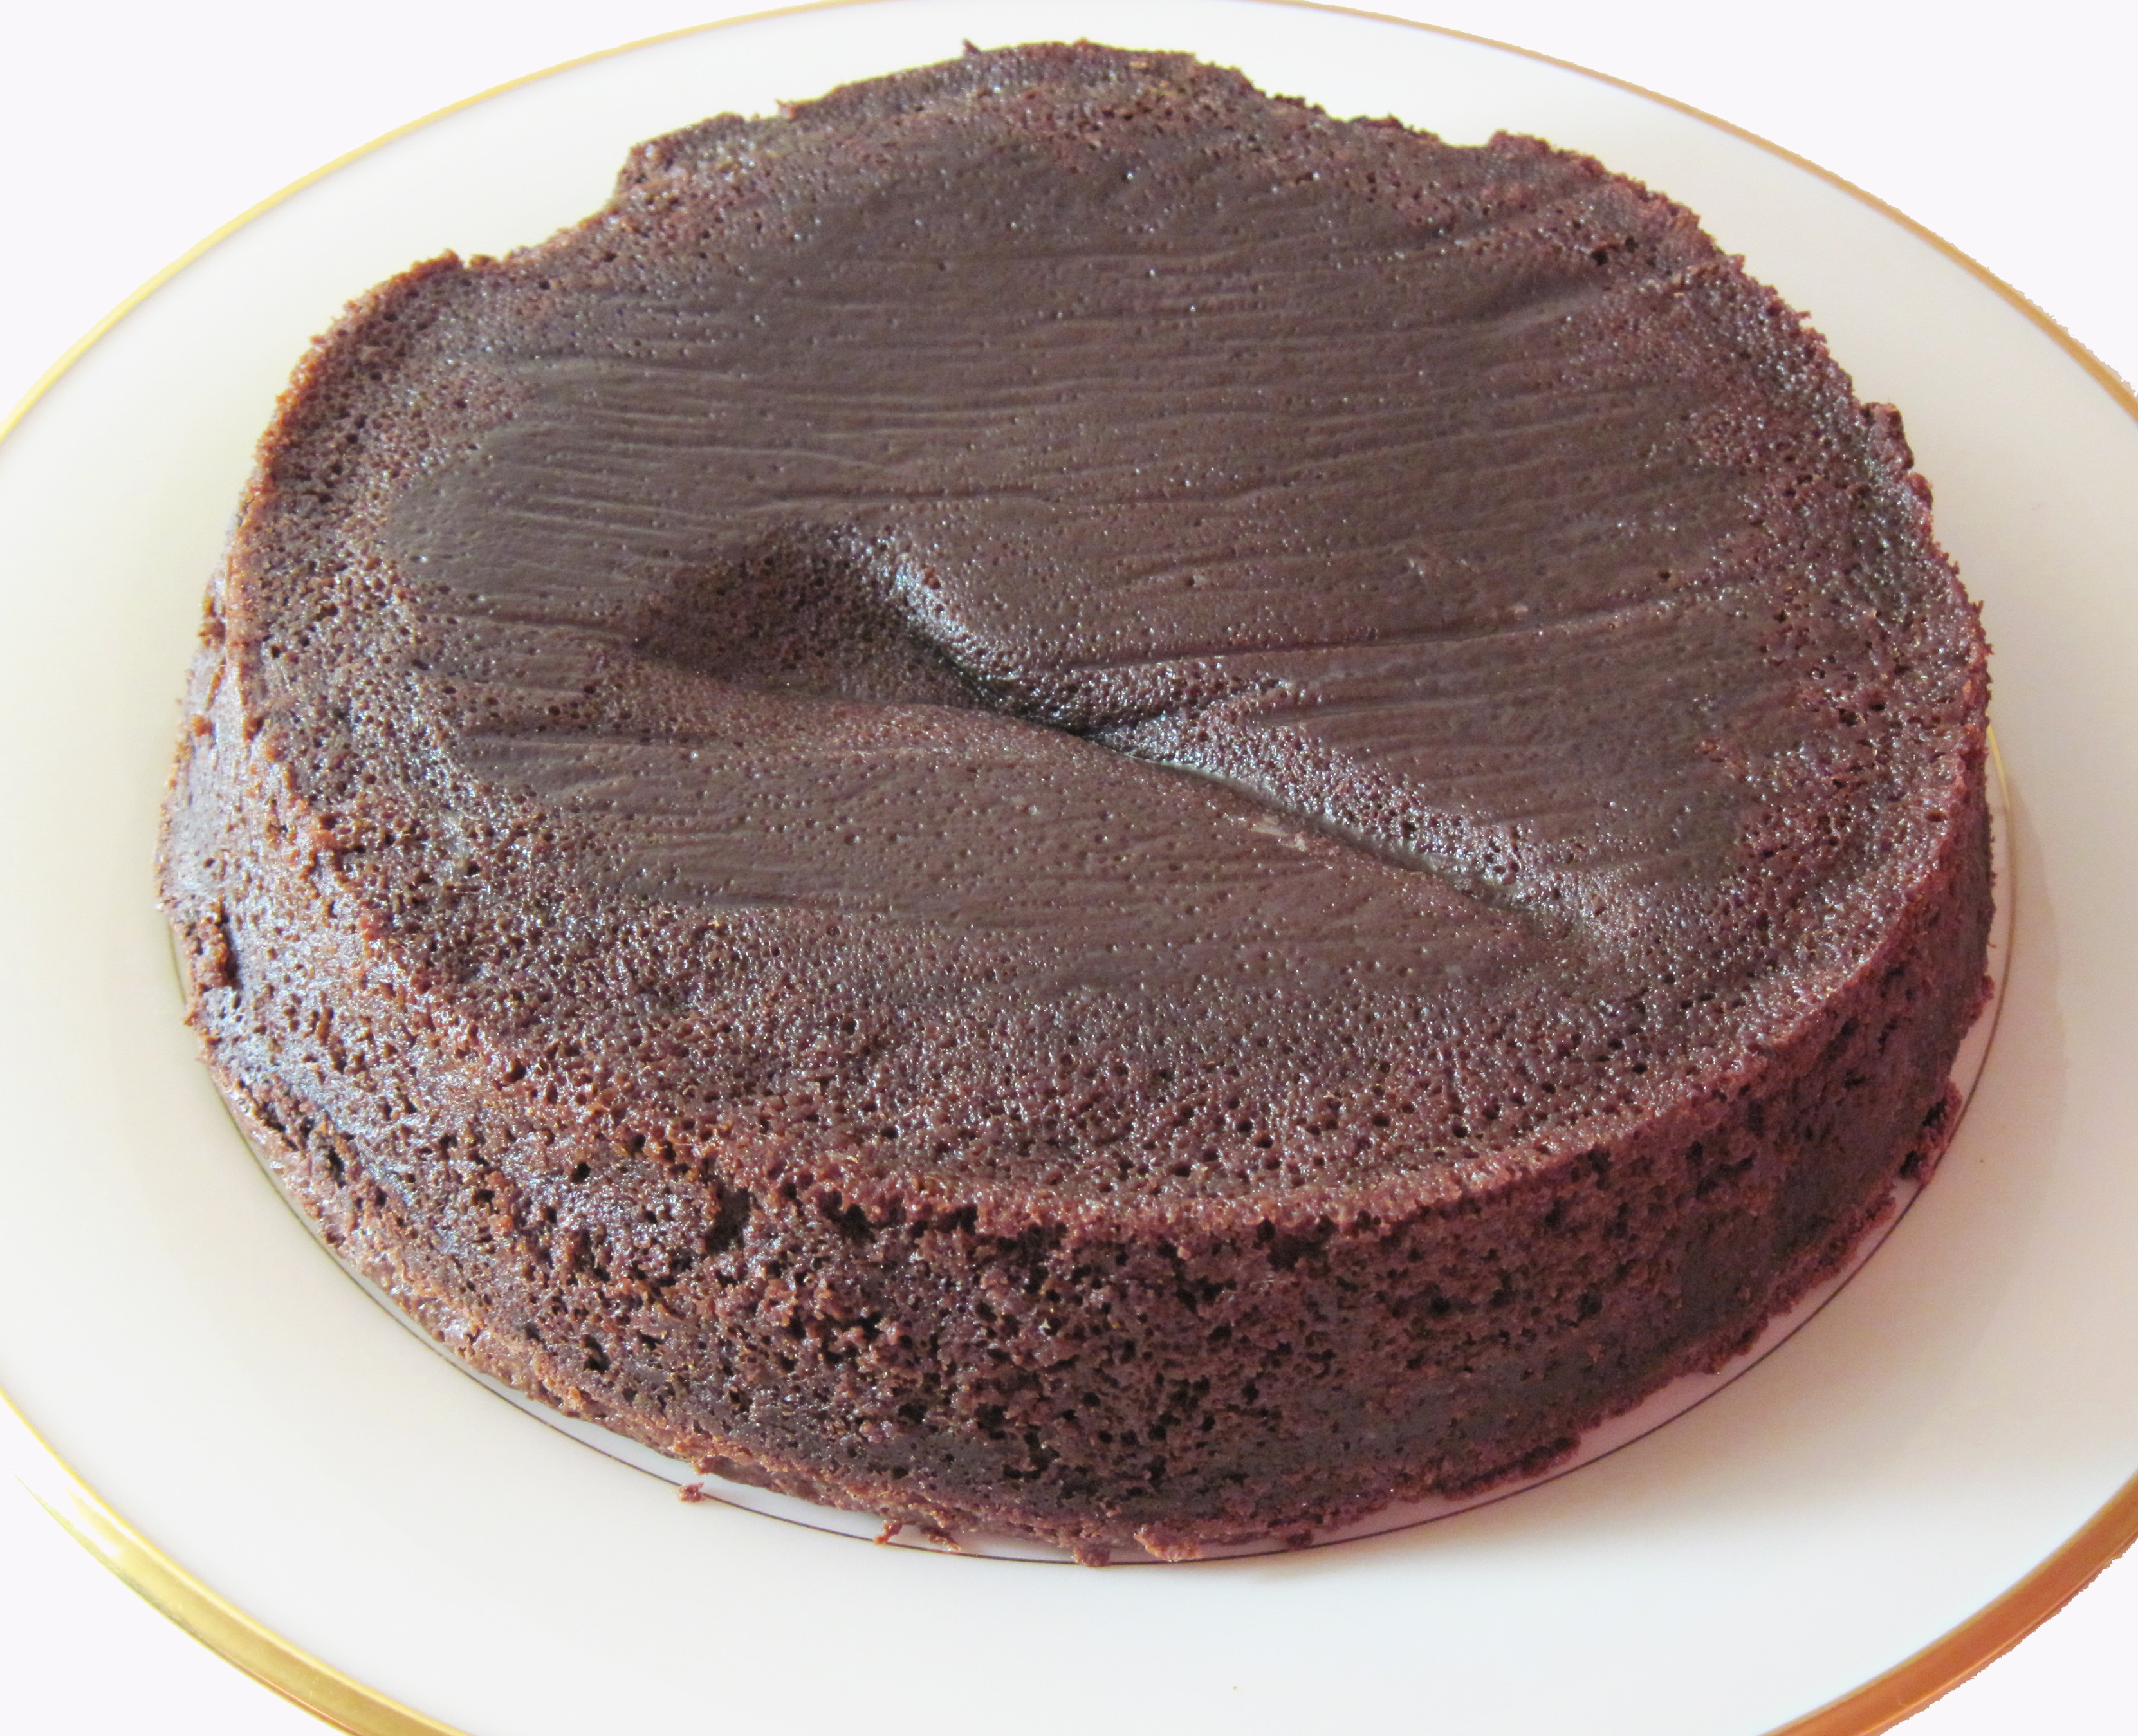 What To Serve With Flourless Chocolate Cake